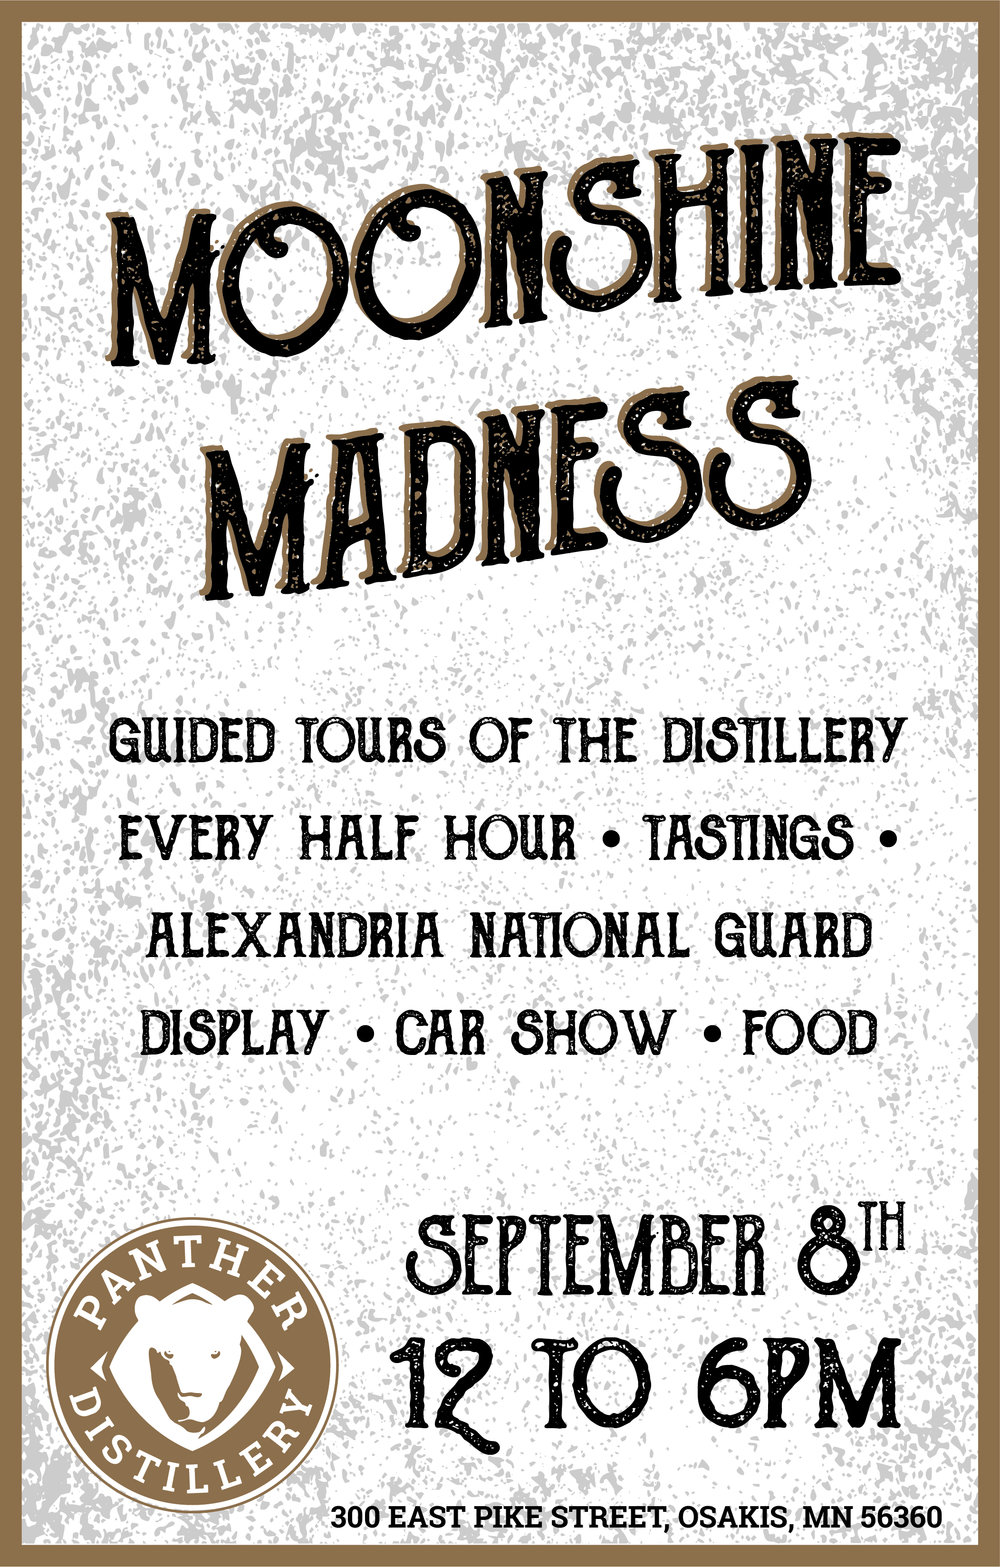 Moonshine Madness 2018 v2.jpg